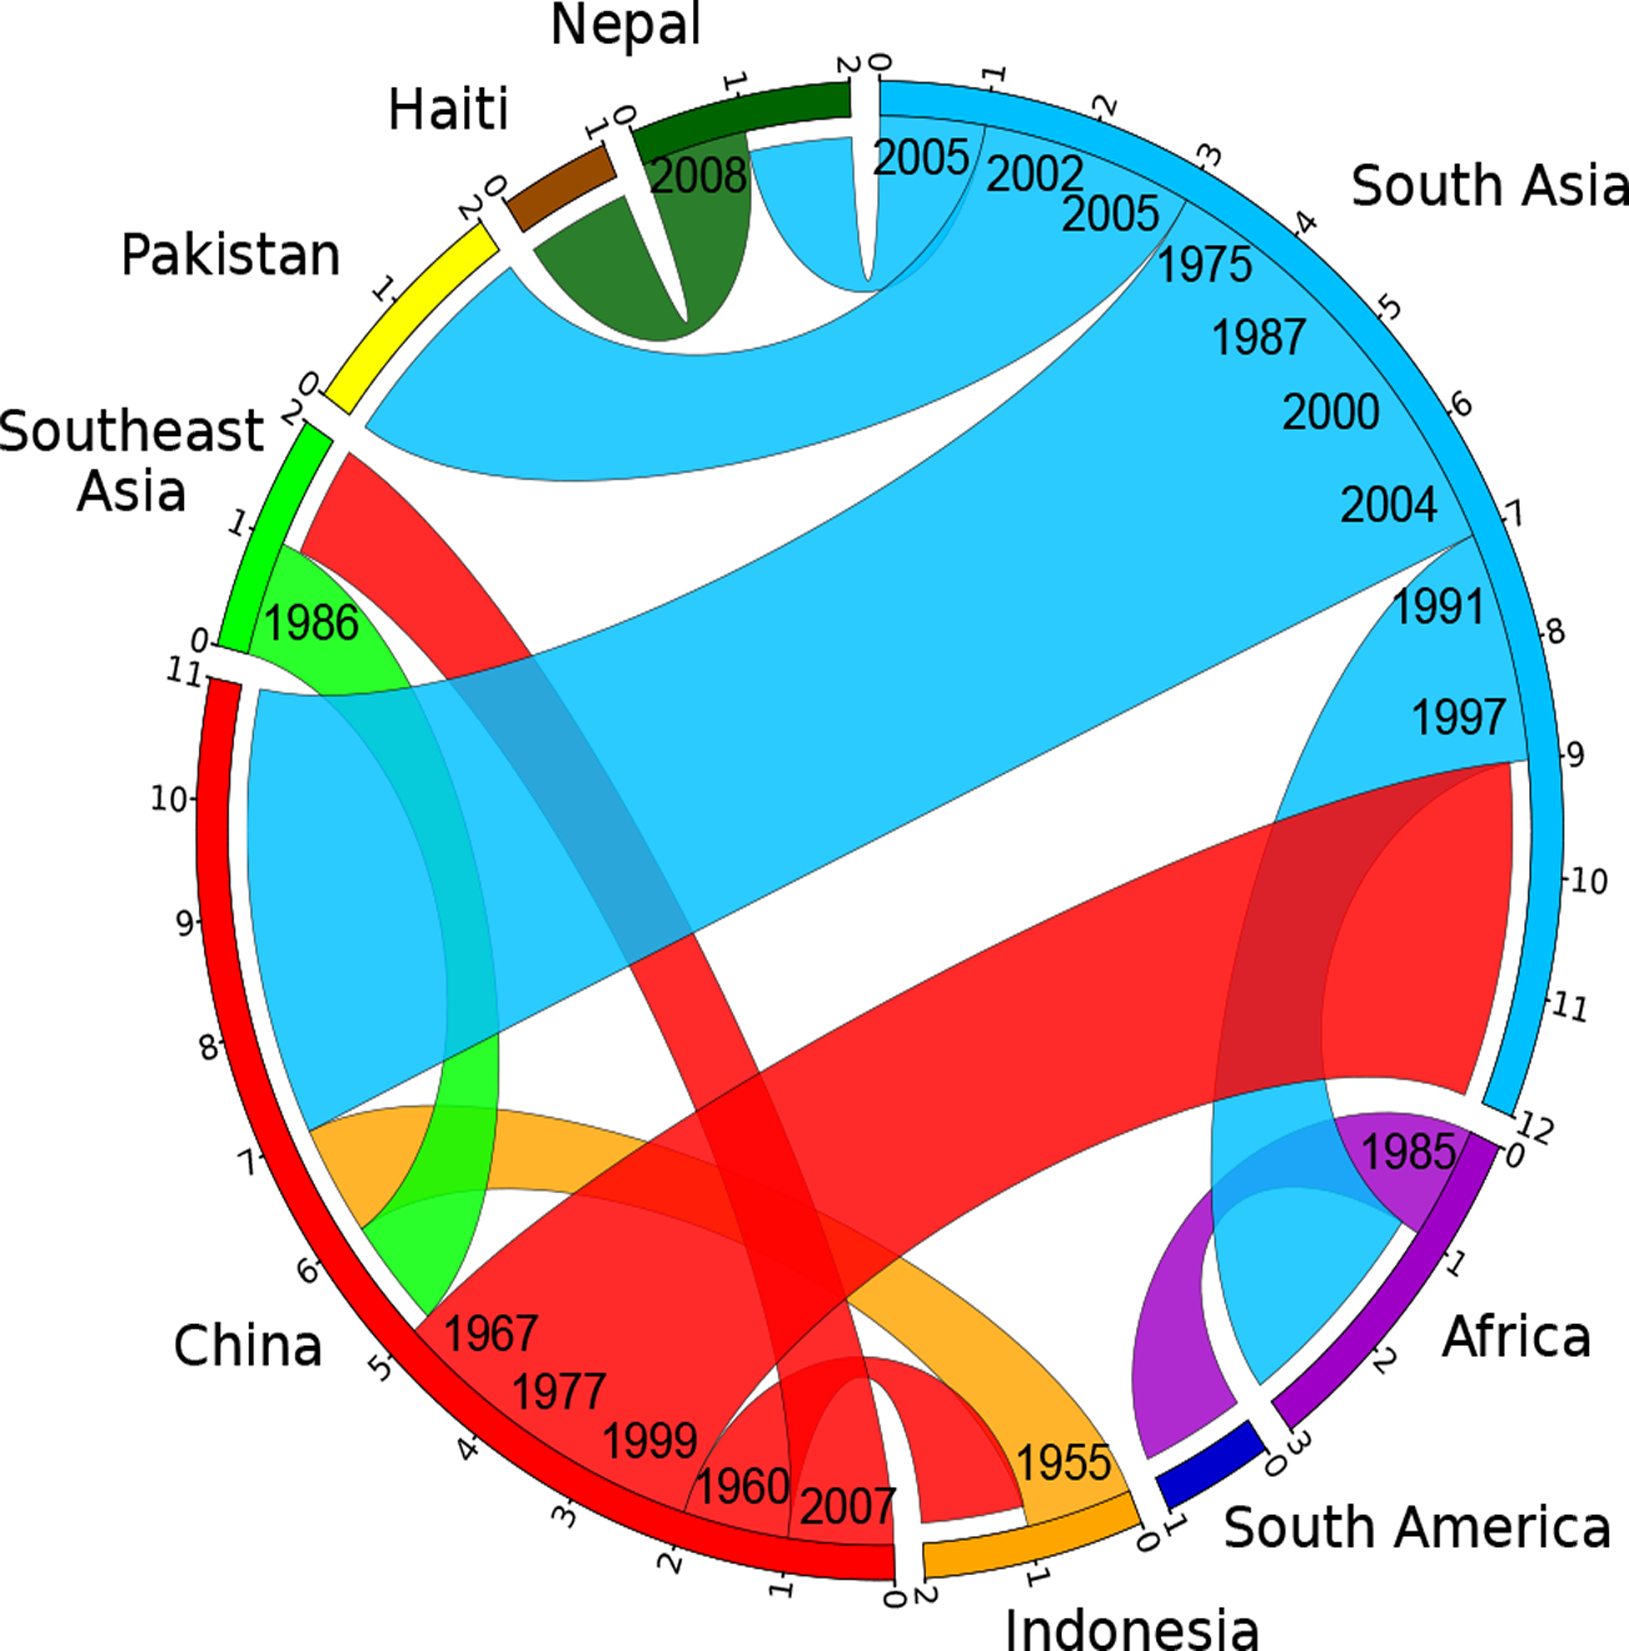 Circular plot illustrating the inferred migrations between geographical locations.